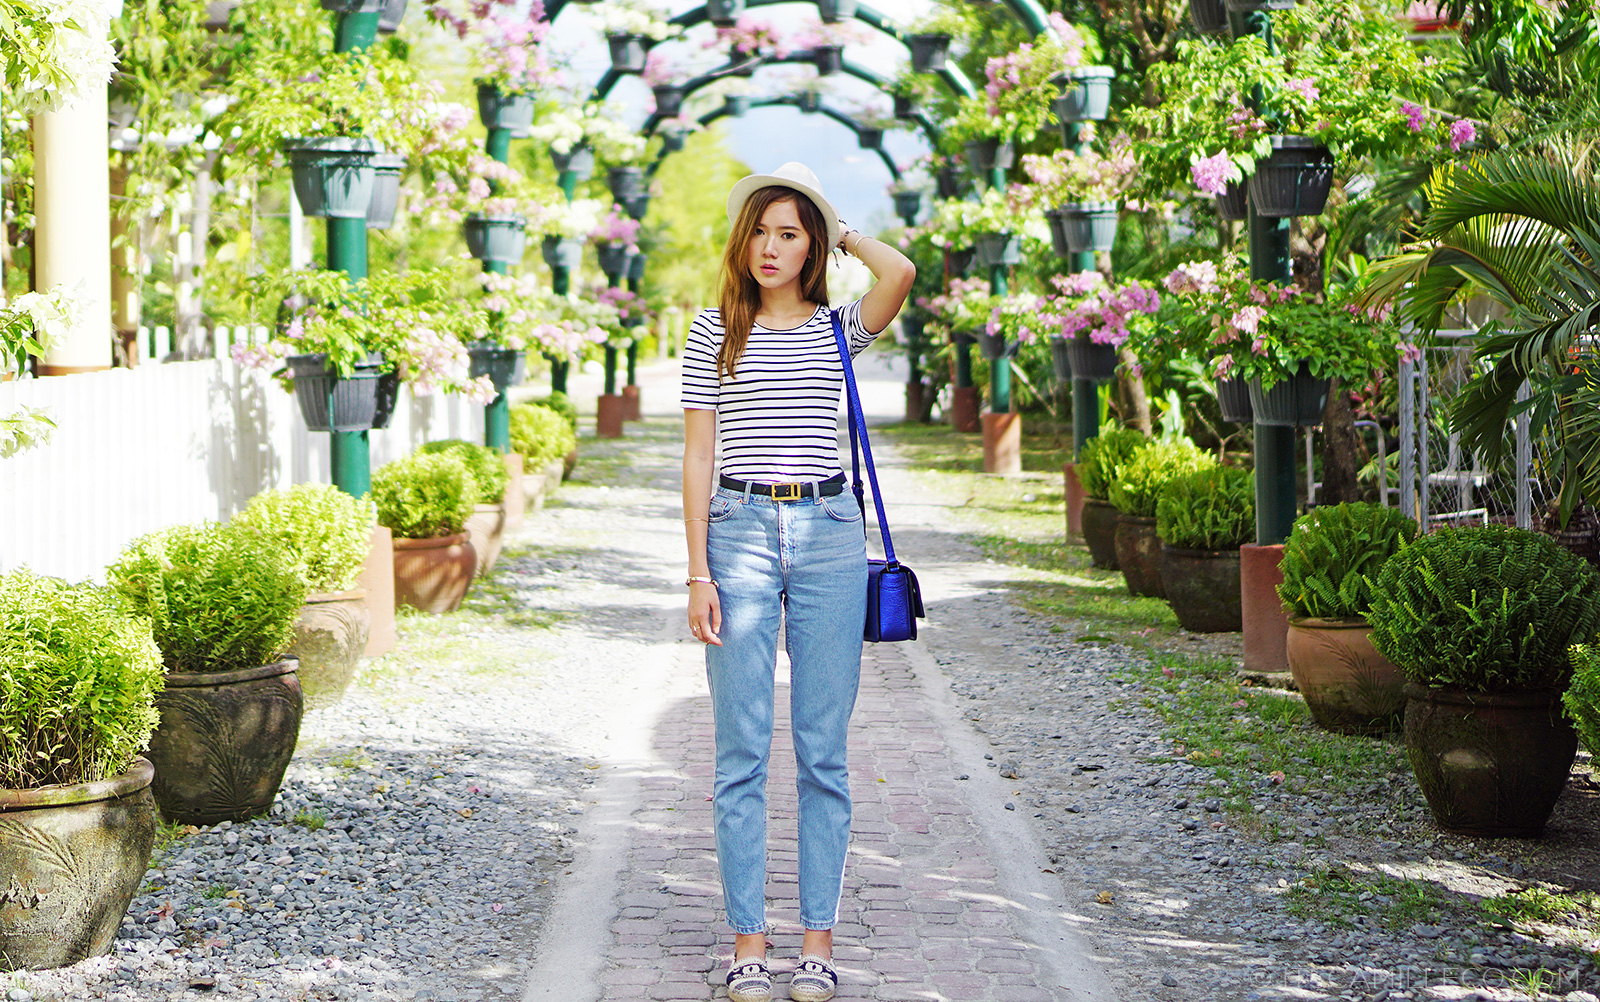 VES Food Resort And Villas, WAGW Top, Topshop Mom Jeans, Chanel espadrilles, 3.1. Phillip Lim Messenger Bag | www.itscamilleco.com